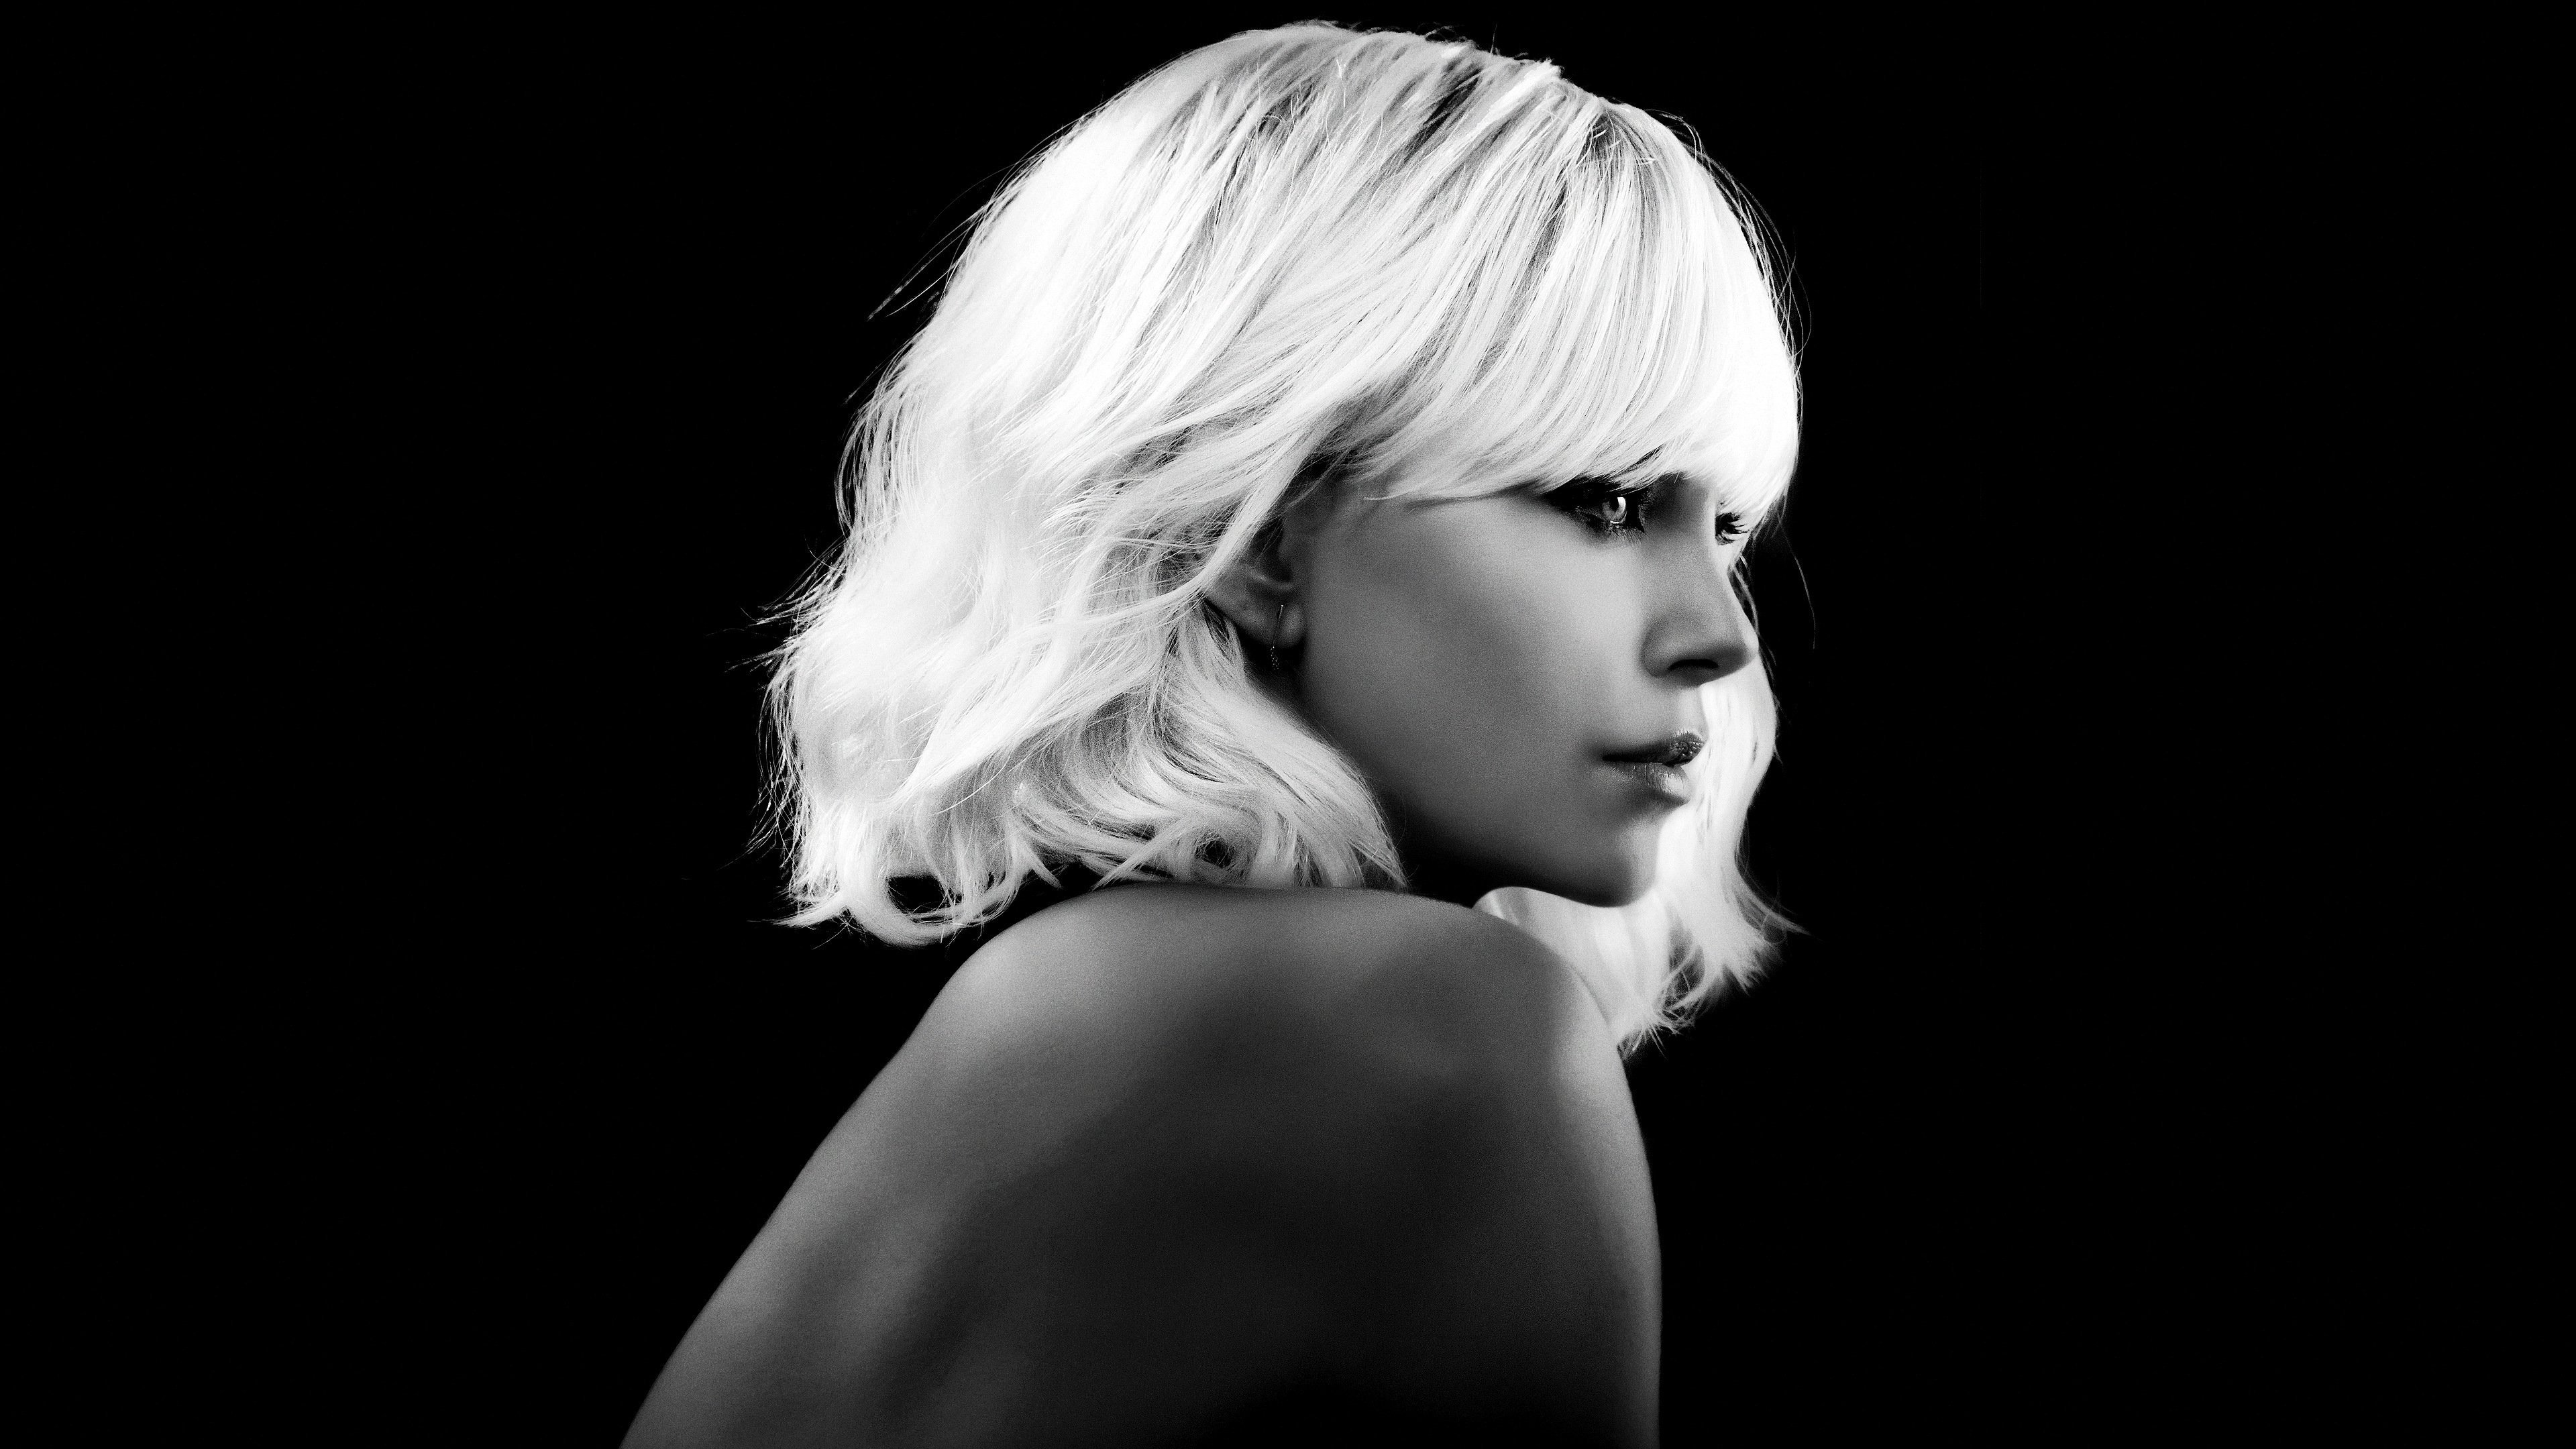 3840x2160 - Charlize Theron Wallpapers 25